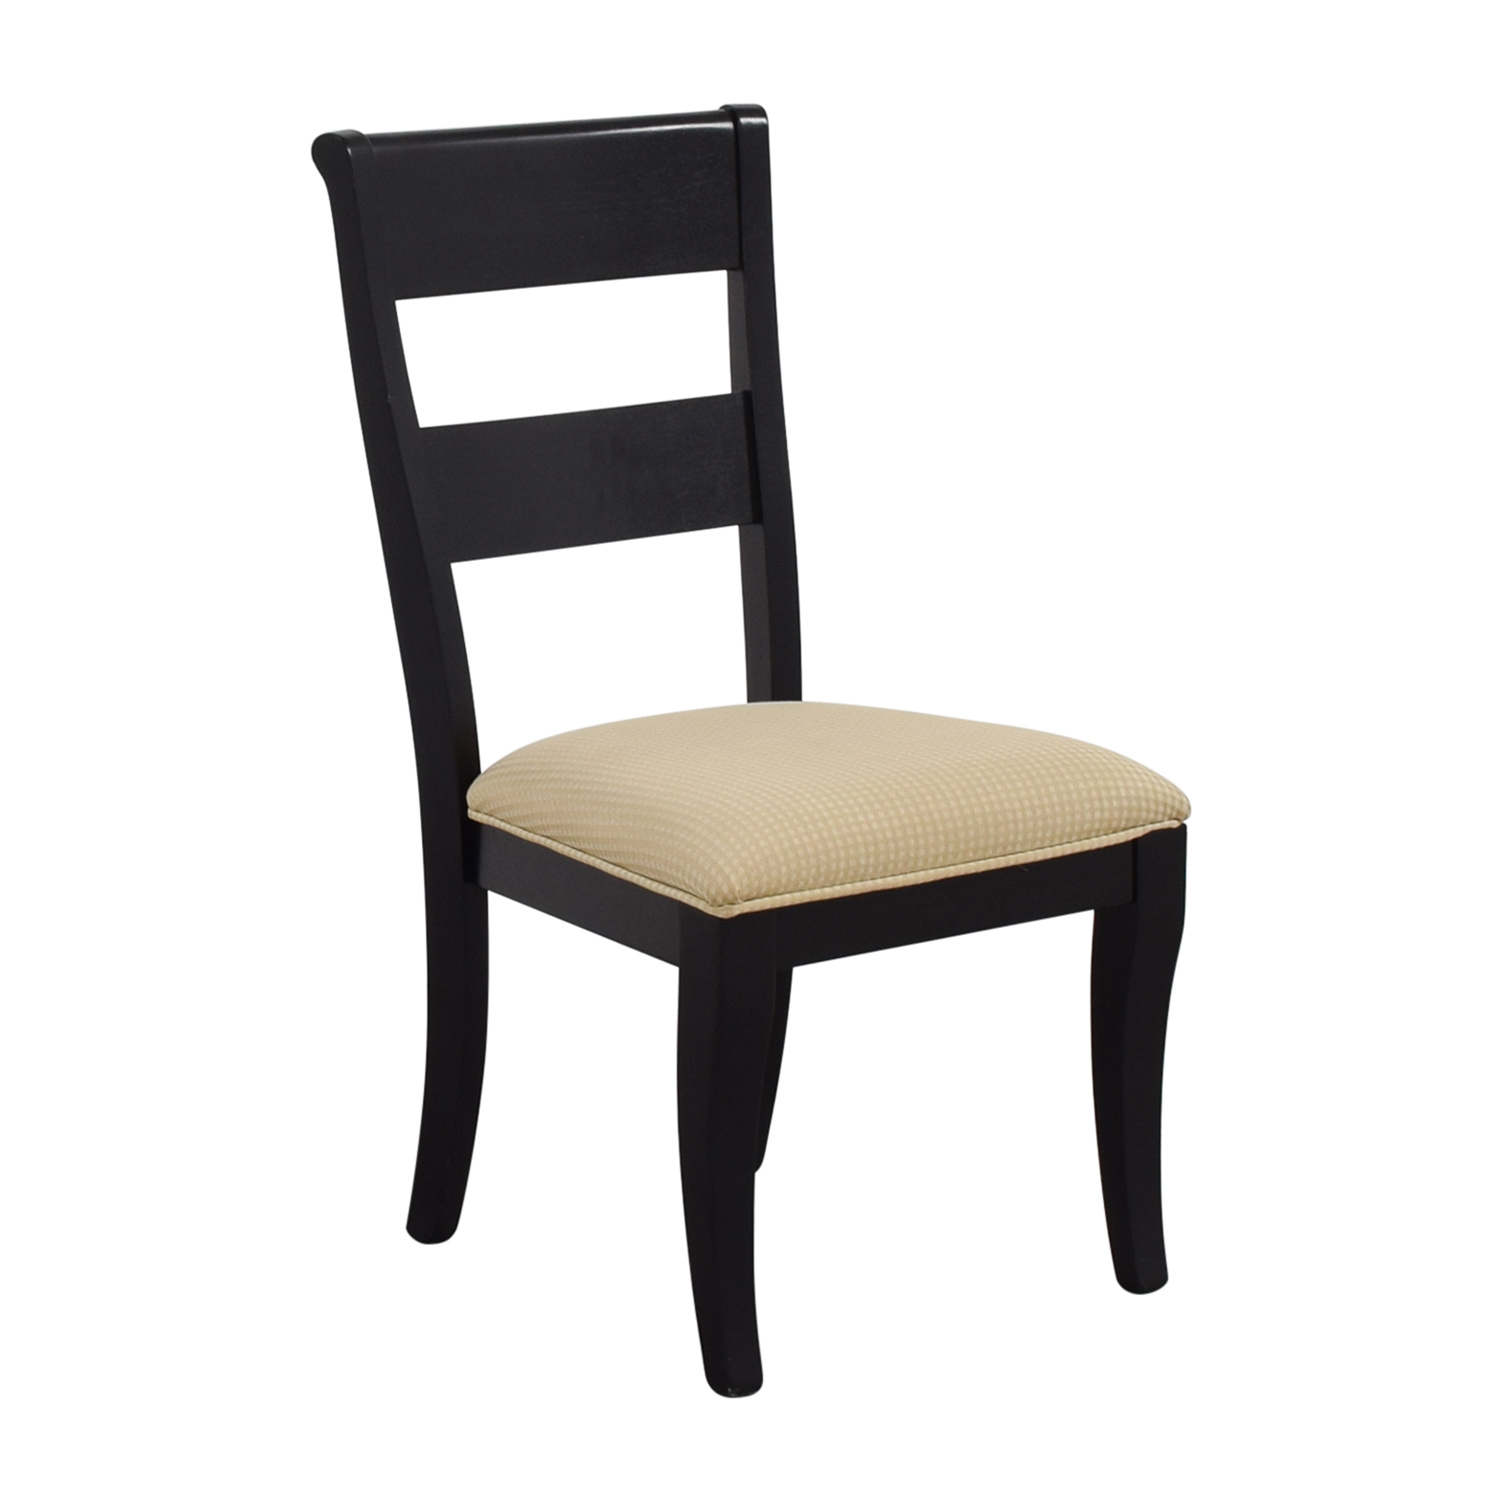 shop Raymour & Flanigan Raymour & Flanigan Black Chair with Beige Check Upholstery online